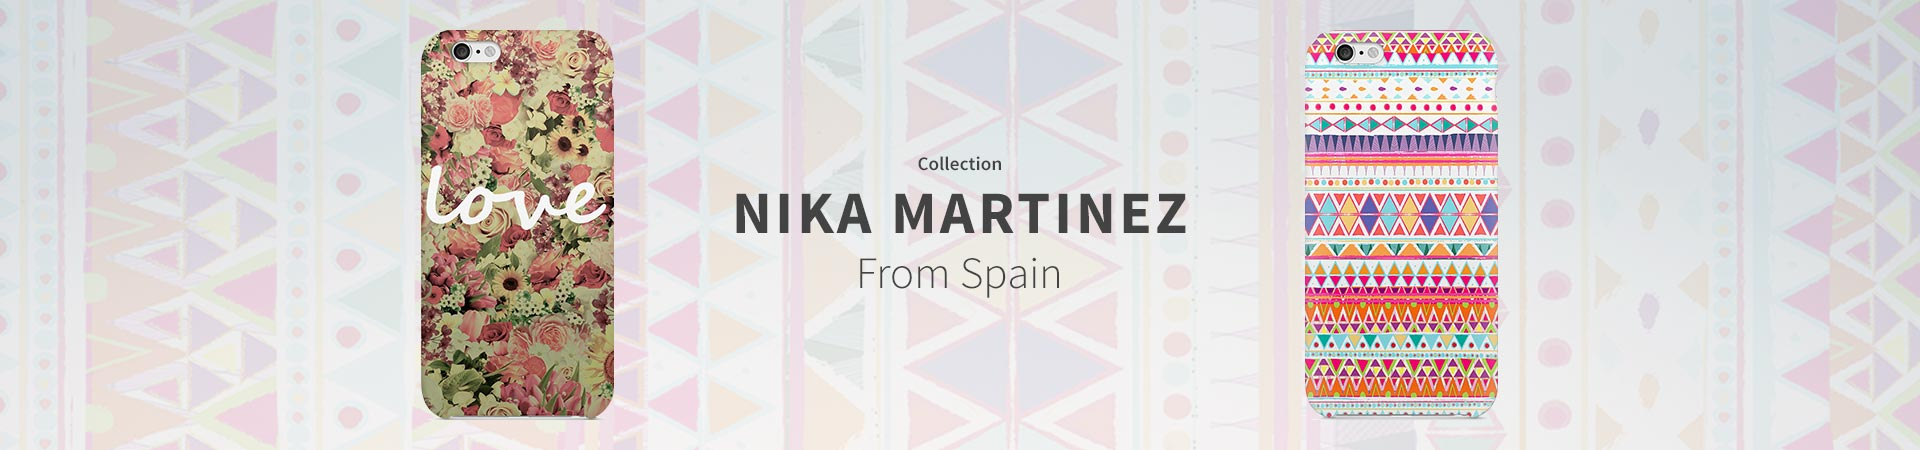 Collection Nika Martinez